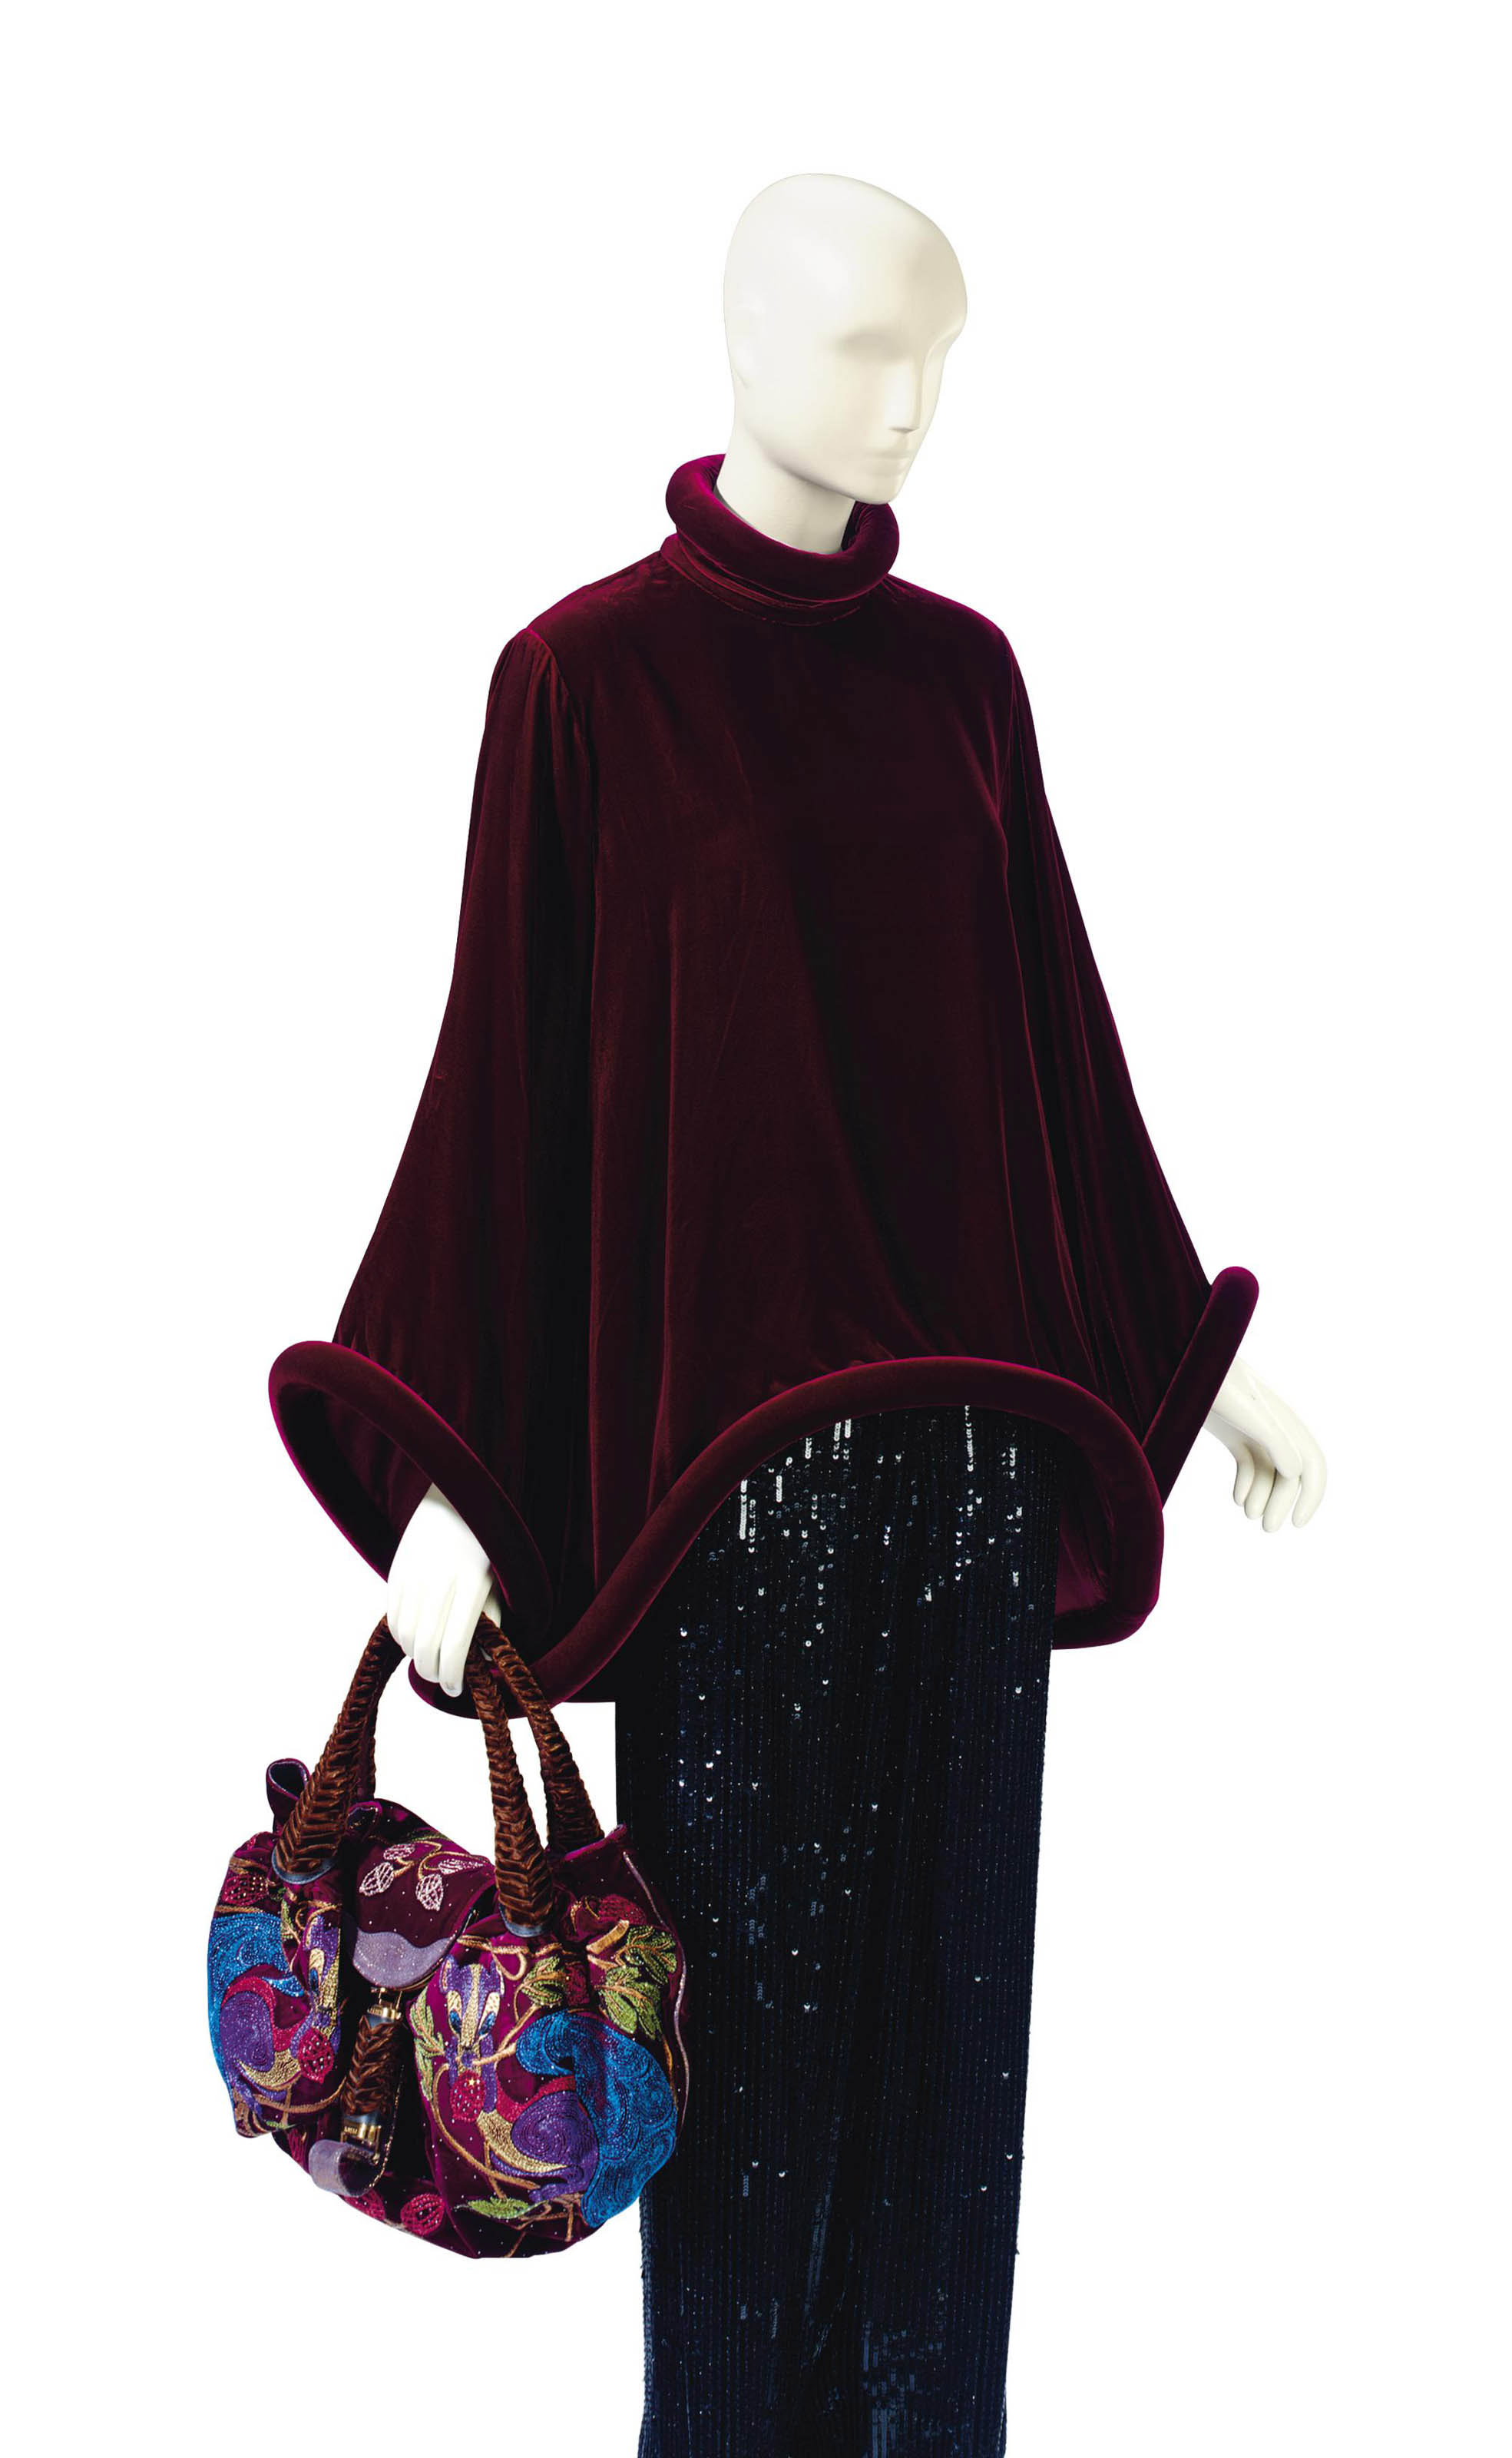 A GAULTIER BURGUNDY VELVET TUNIC AND FENDI BAG